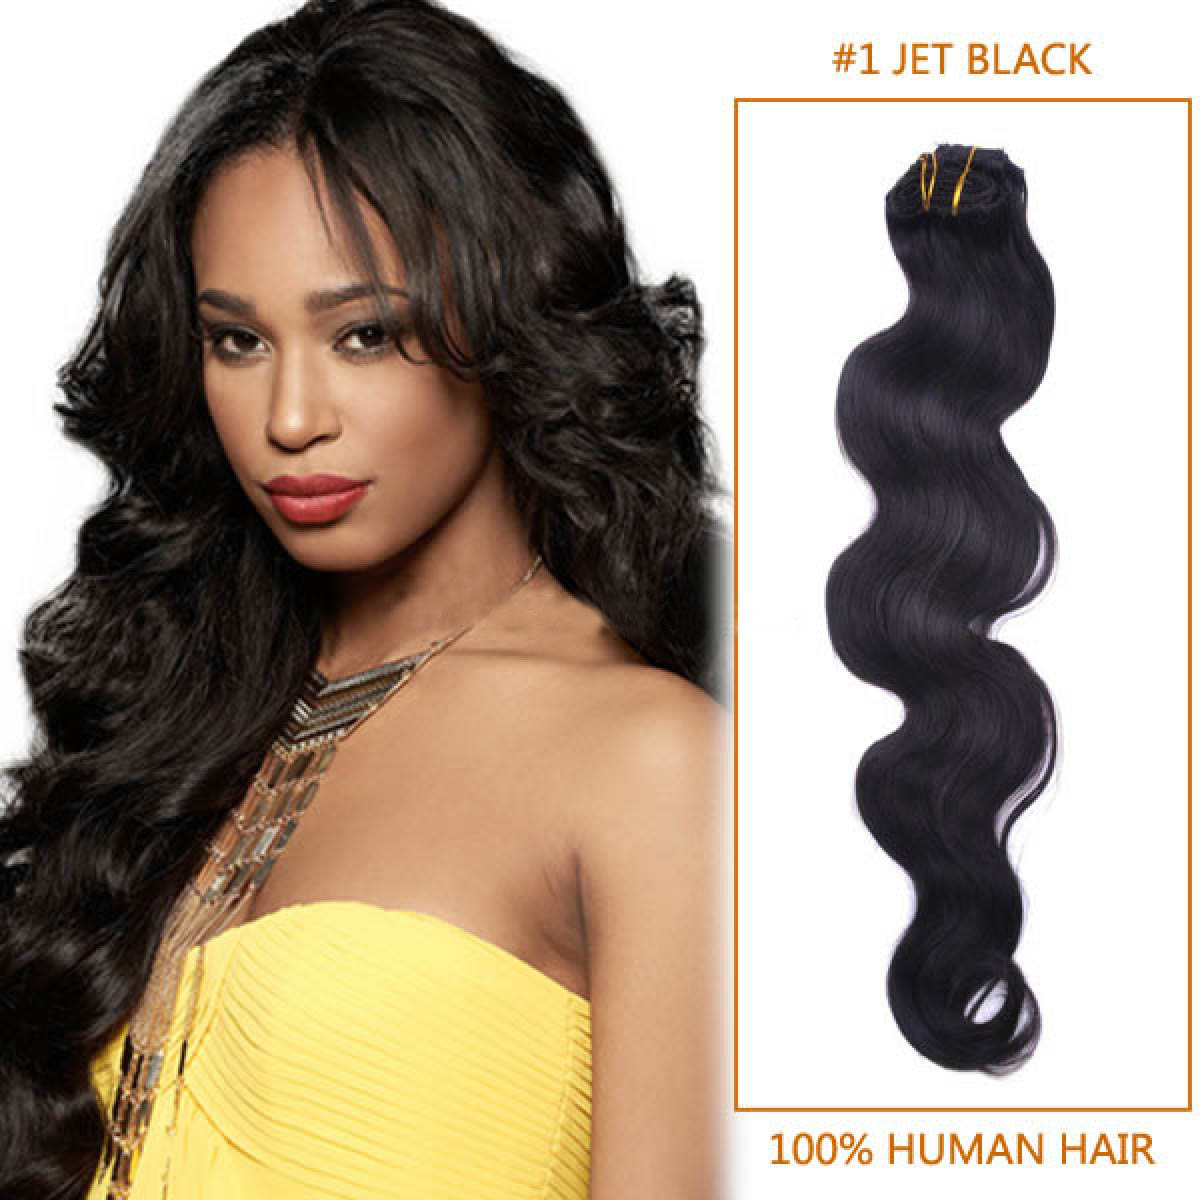 28 Inch 1 Jet Black Body Wave Indian Remy Hair Wefts